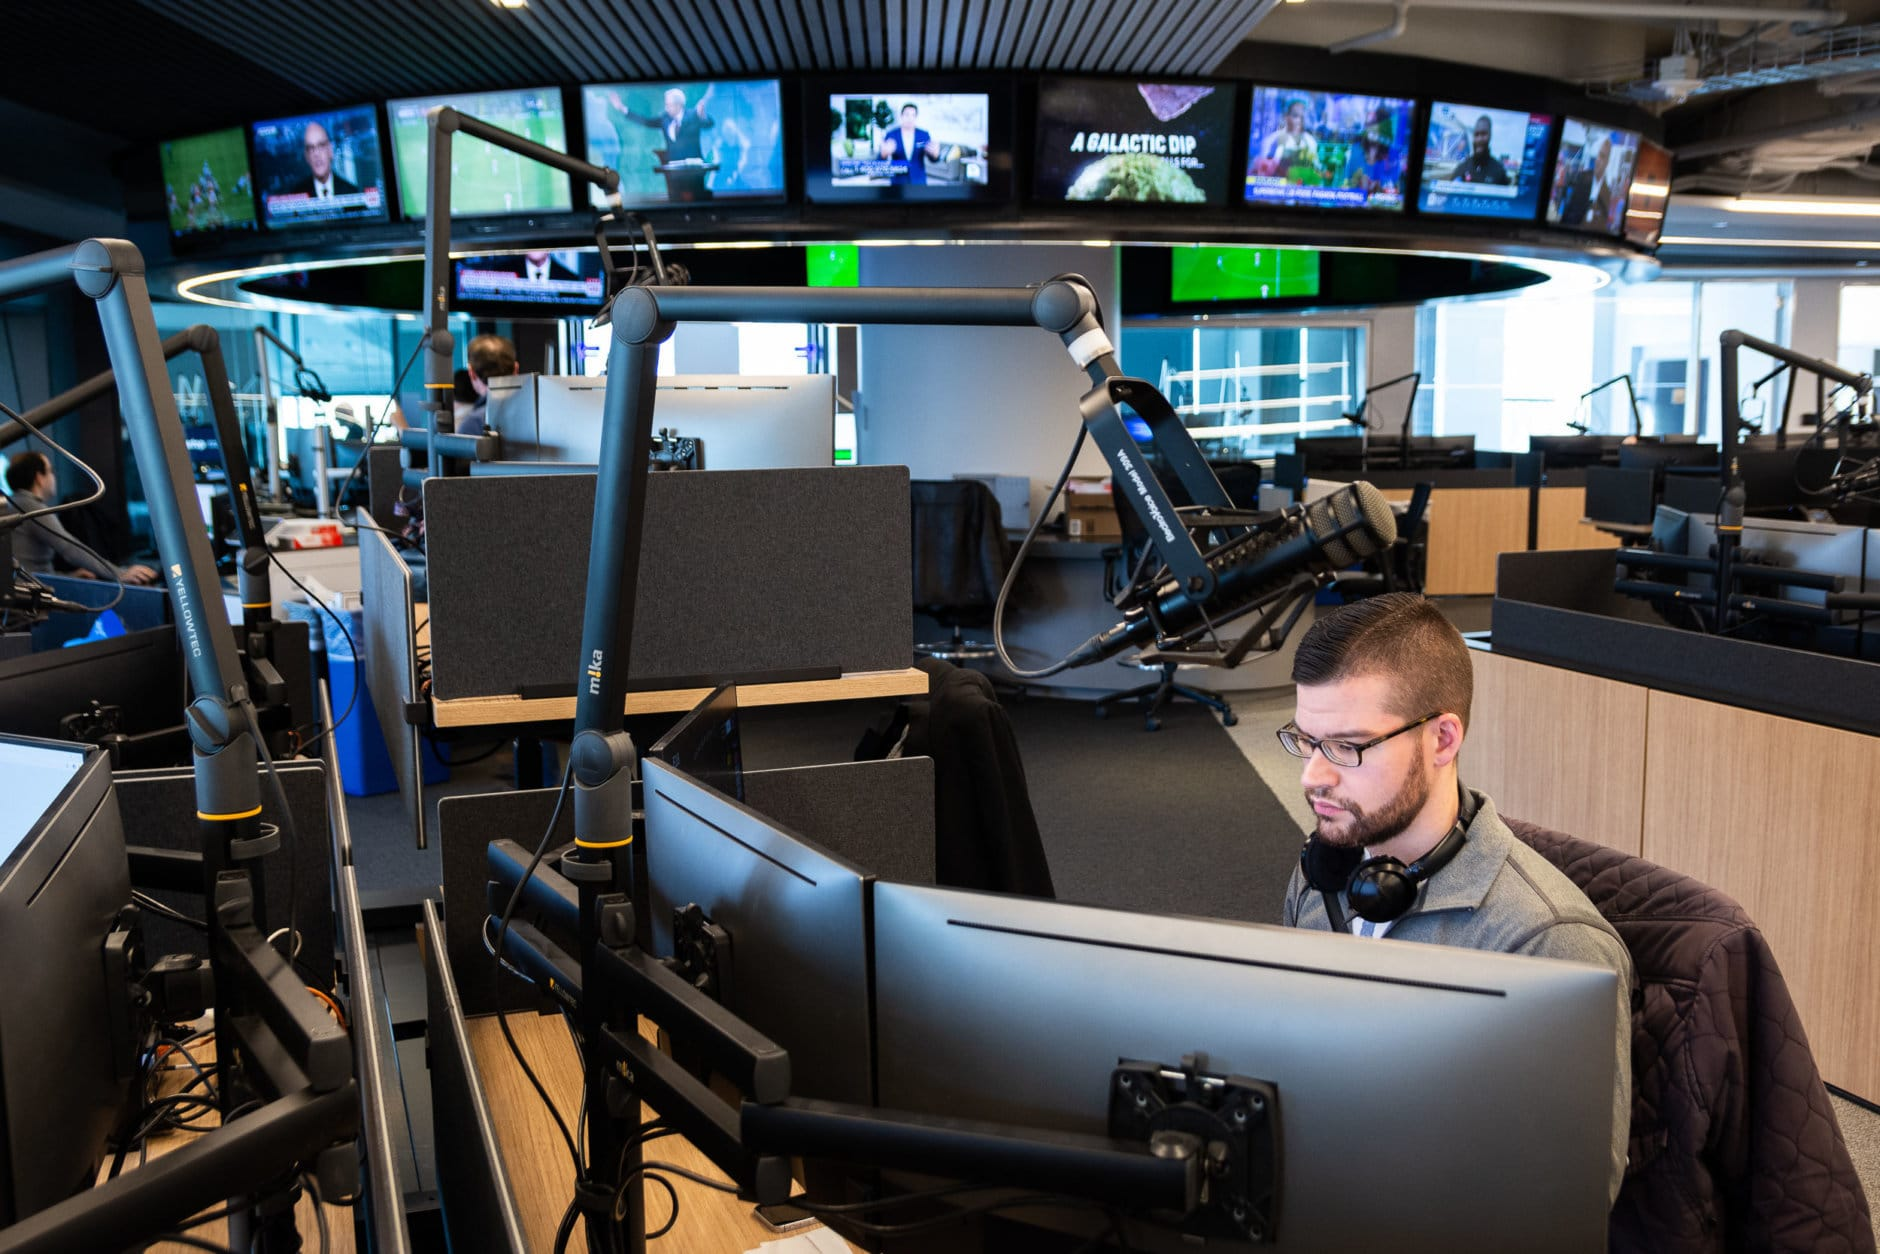 Sunday, Feb. 3 was the Wisconsin Avenue newsroom's first full day in action. After a smooth handoff from the Idaho Avenue office, WTOP's on-air and web teams were settling in to their new desks. Pictured: Digital writer Jack Moore, hard at work reporting on a controversy enveloping Virginia Gov. Ralph Northam. (WTOP/Alejandro Alvarez)